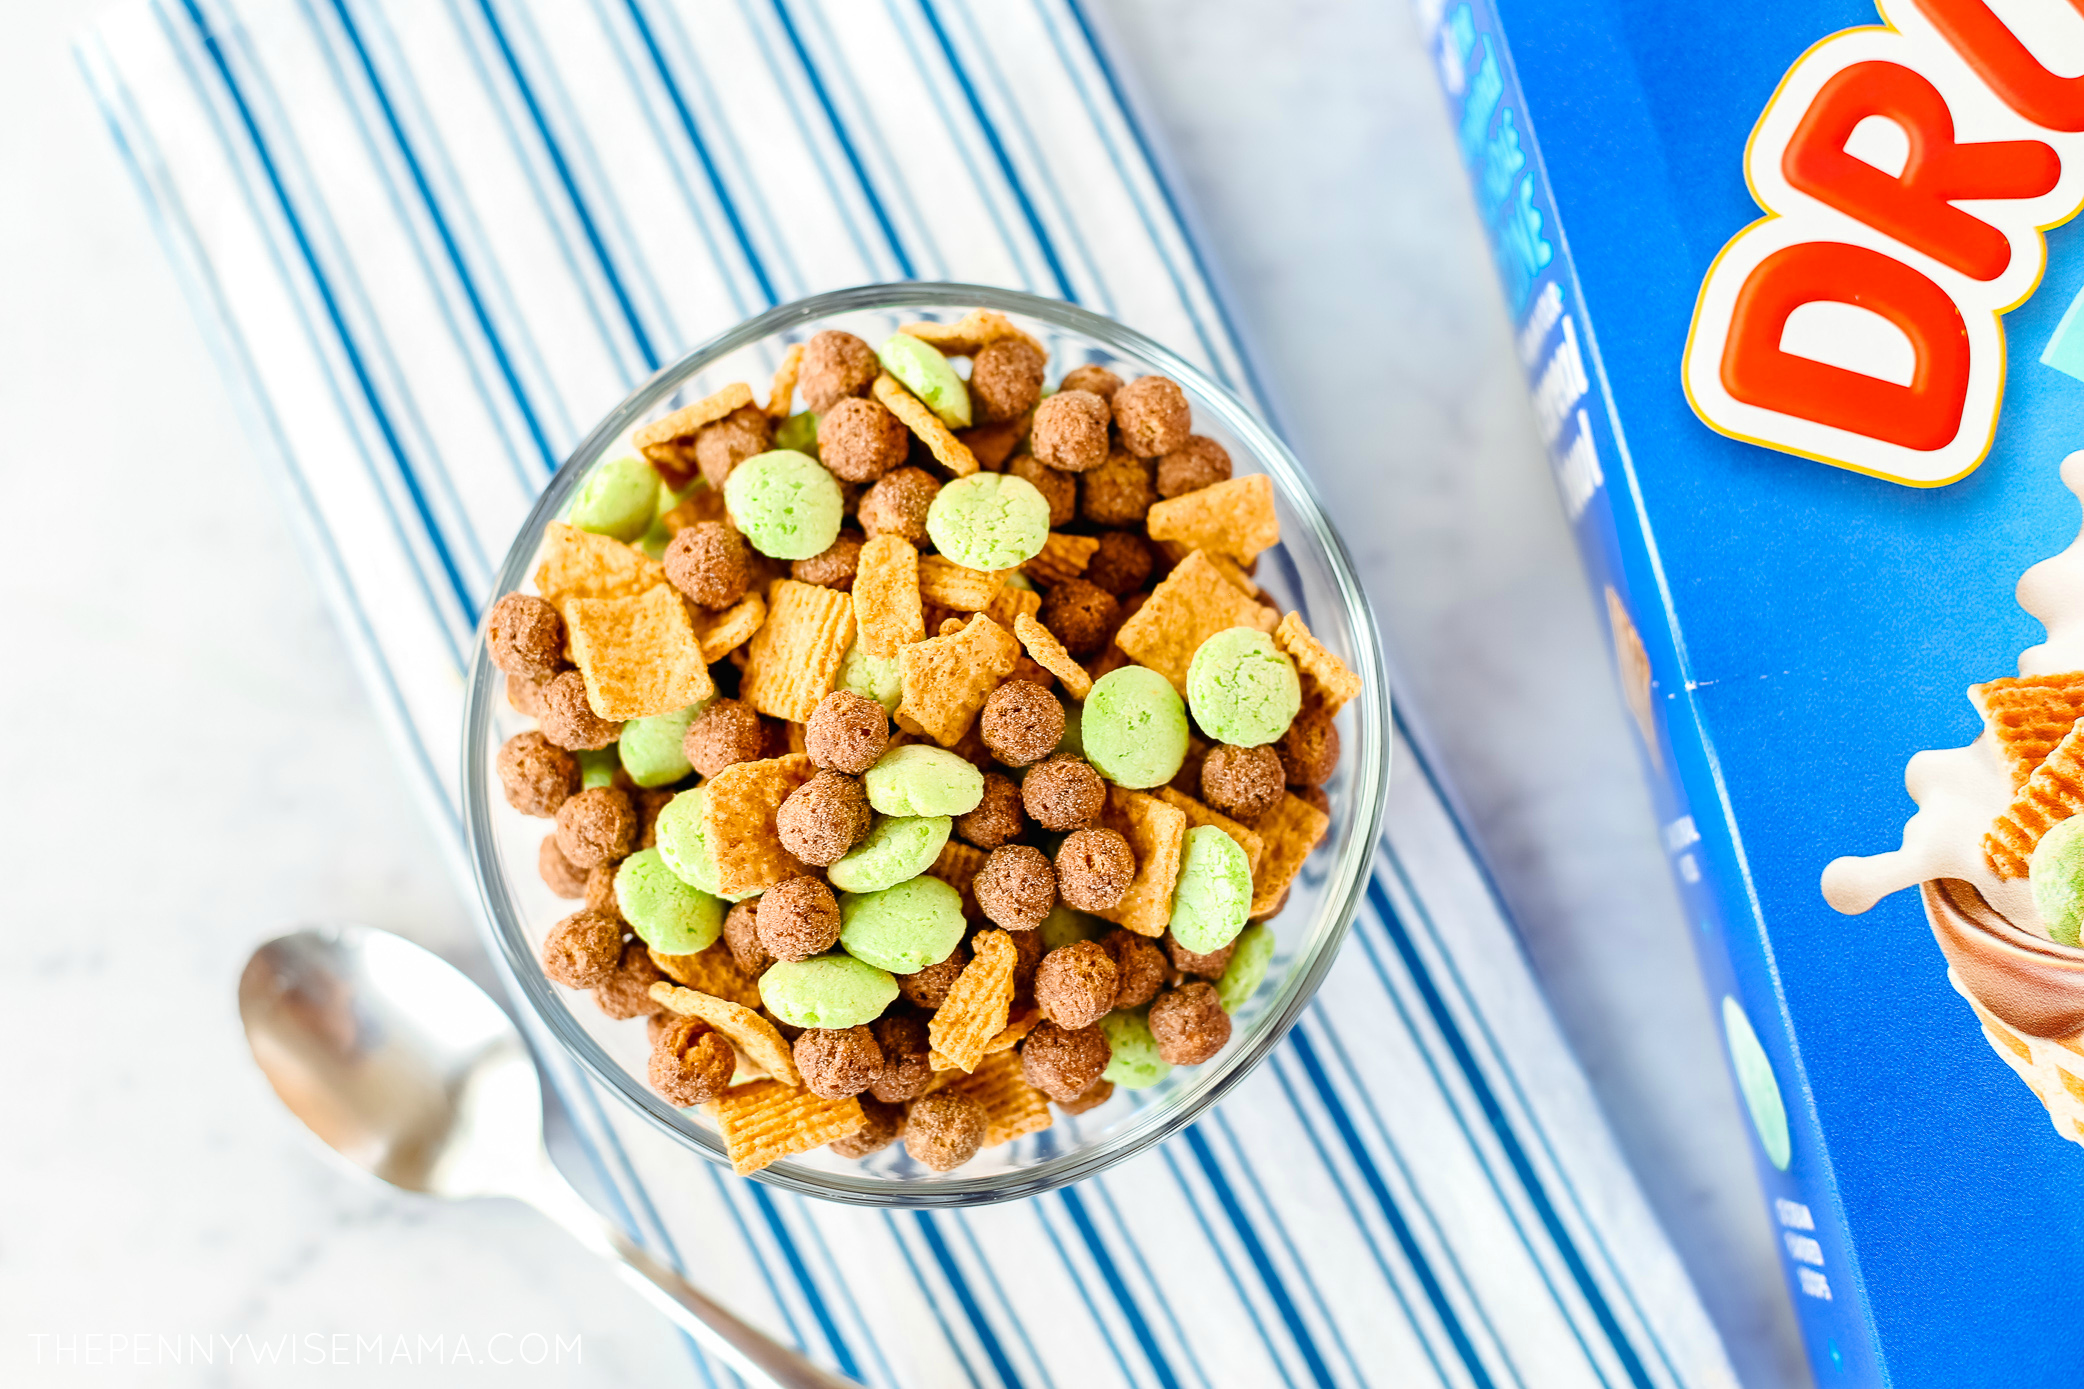 New Drumstick Cereal Mint Chocolate